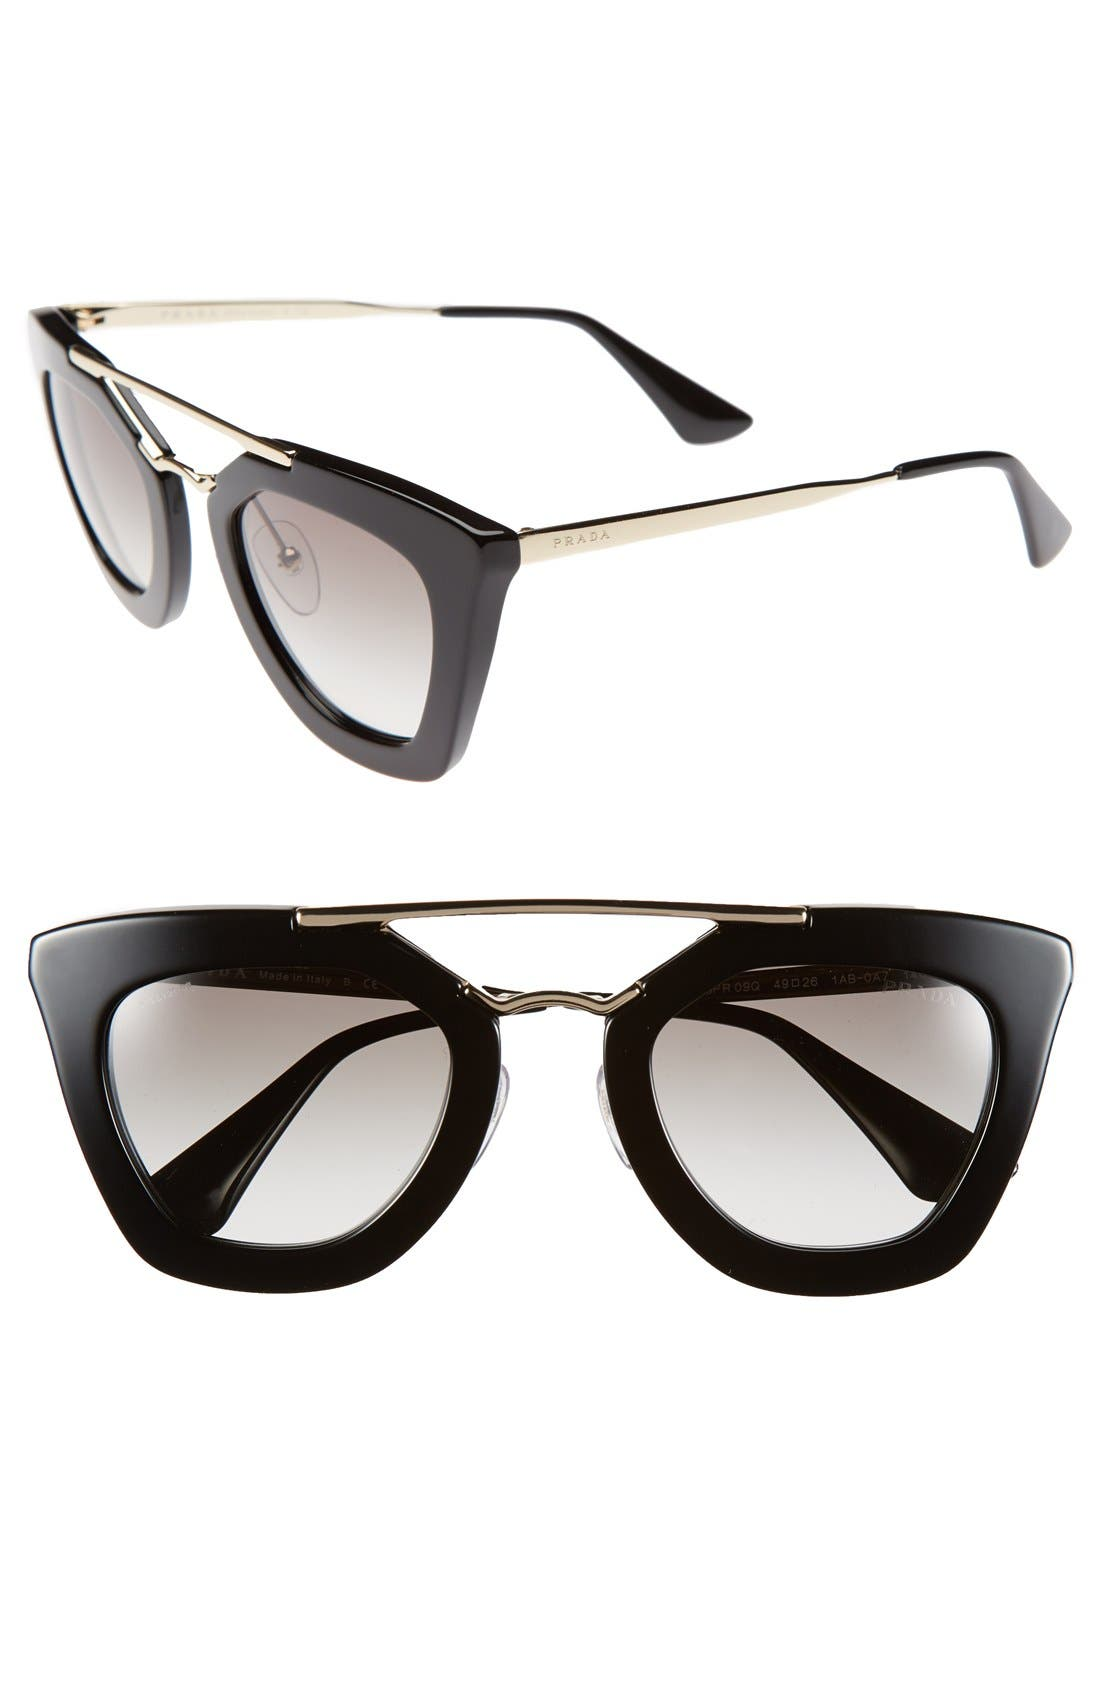 PRADA, 49mm Retro Sunglasses, Main thumbnail 1, color, 001